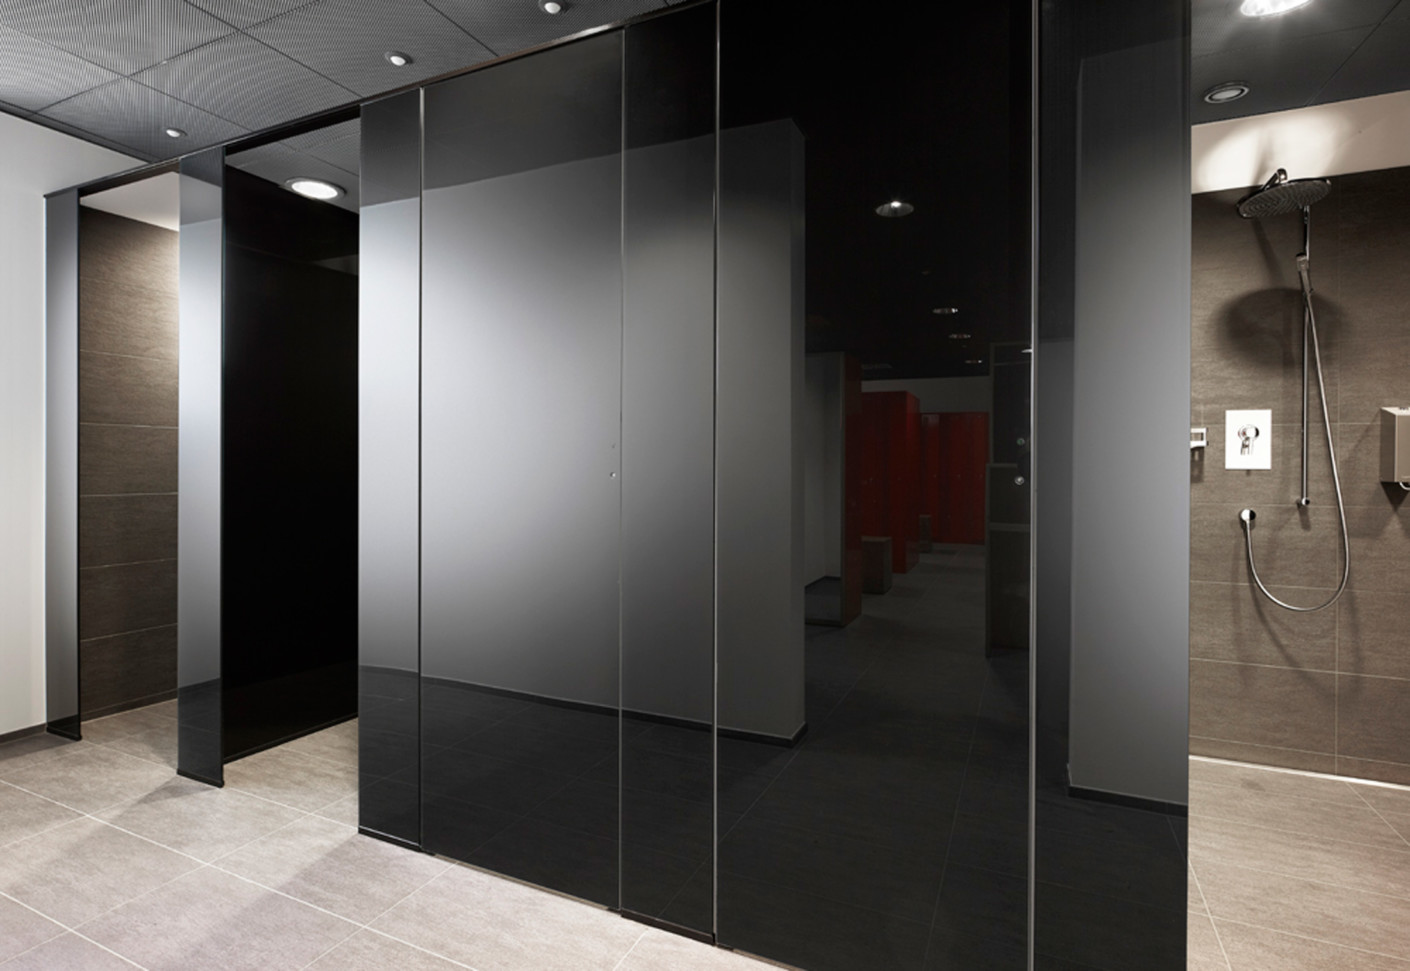 Gm Cabinmart Sanitary Partitions By Glas Marte Stylepark